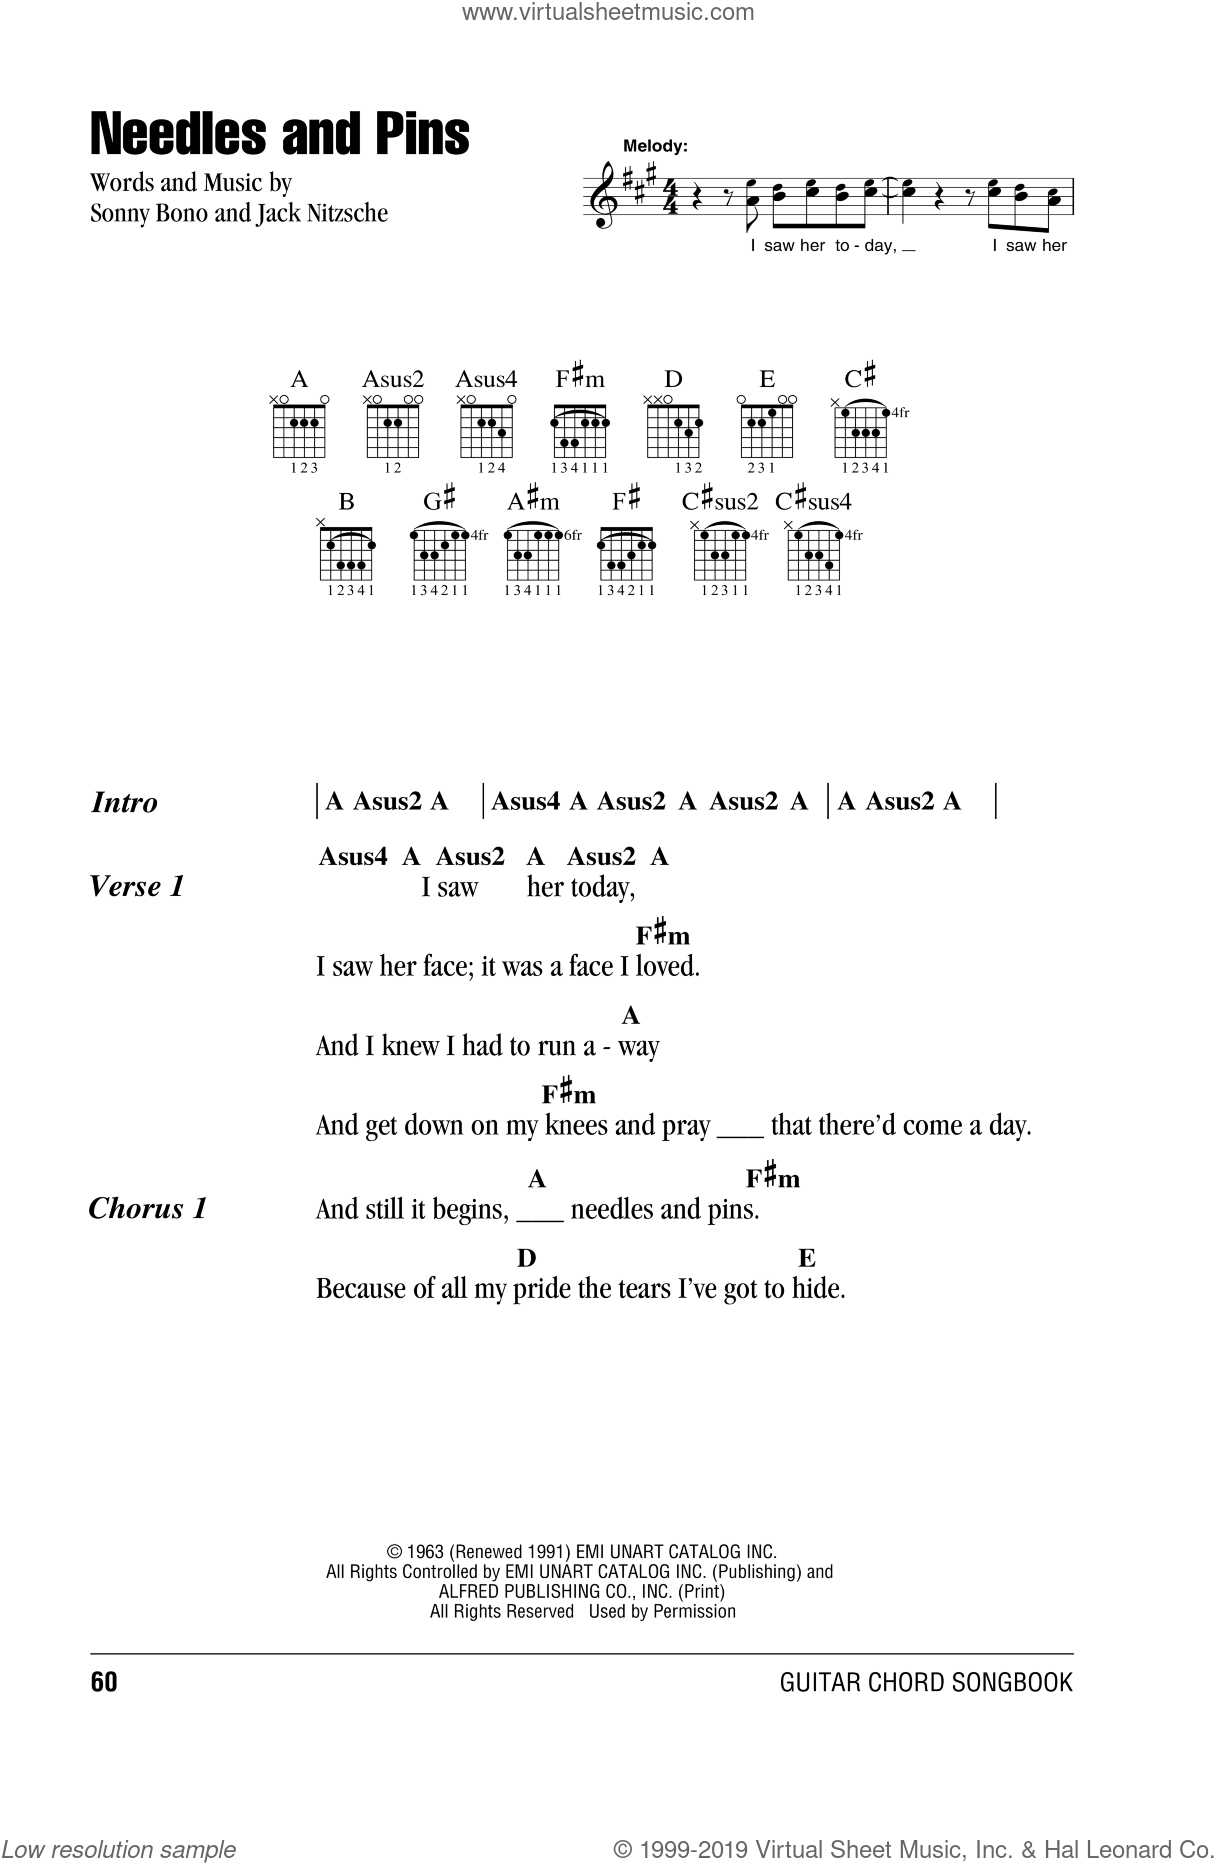 Needles And Pins sheet music for guitar (chords) by Sonny Bono